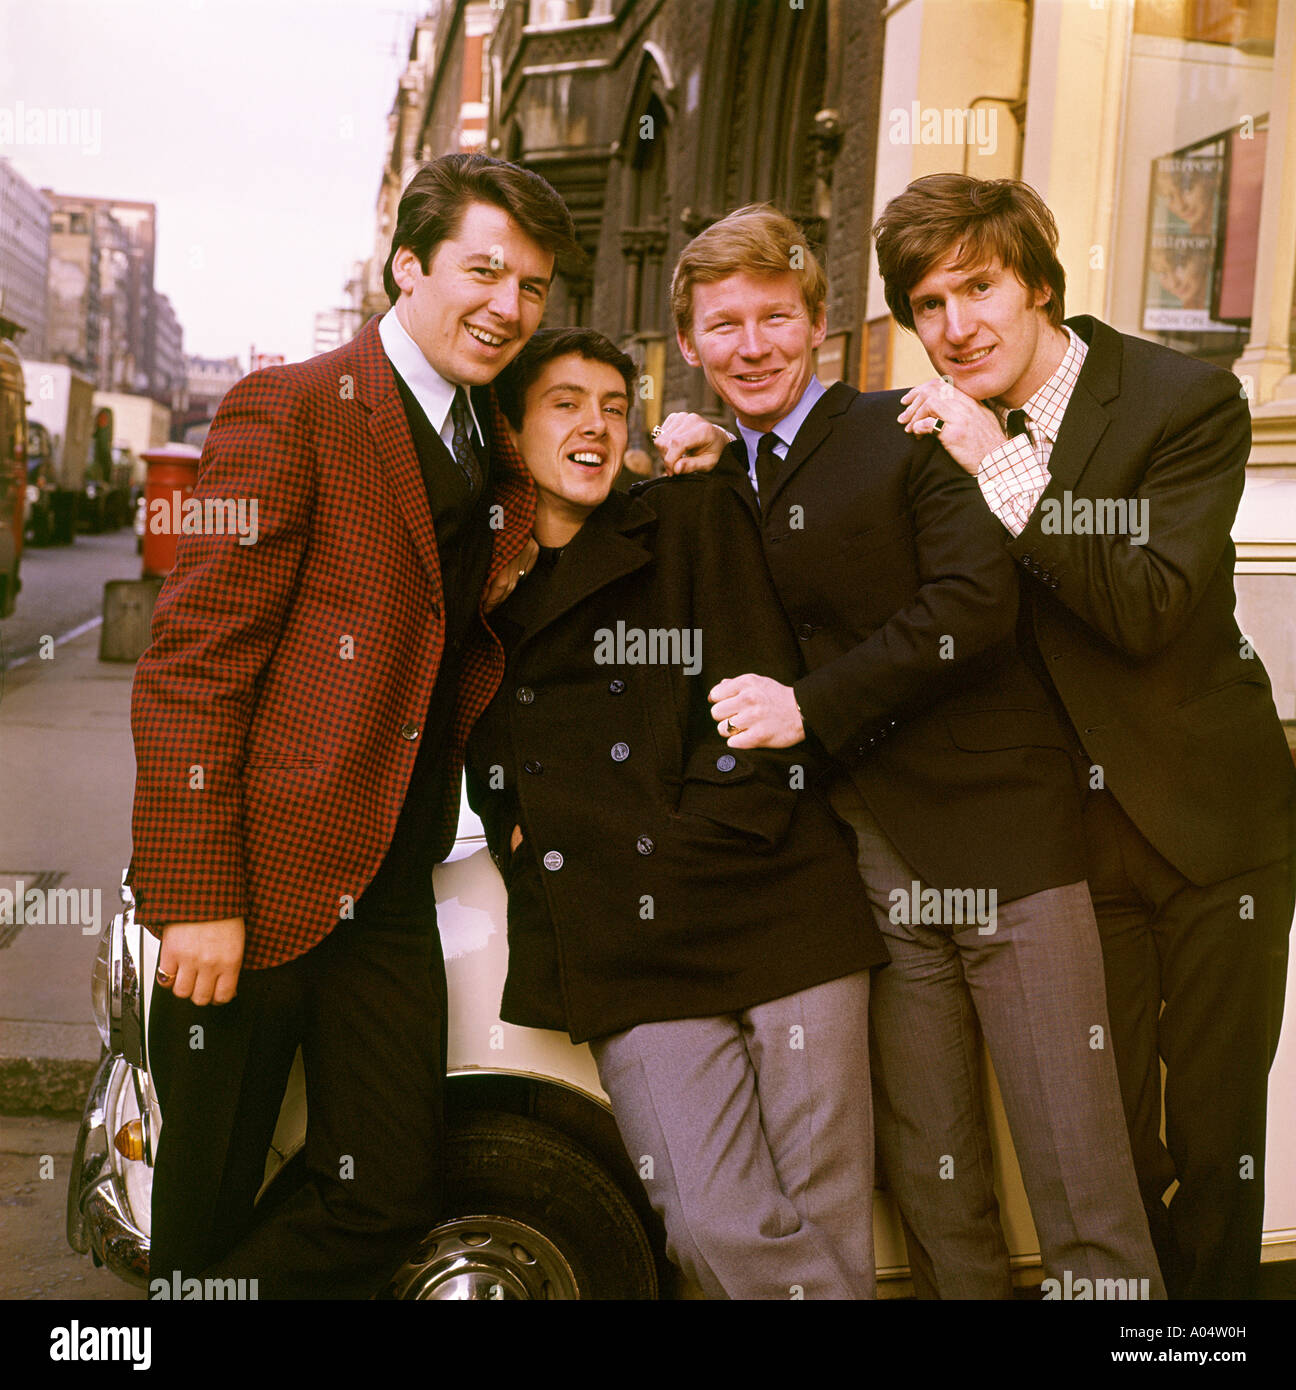 SEARCHERS UK pop group in 1965. See Description below for details. Photo Tony Gale - Stock Image